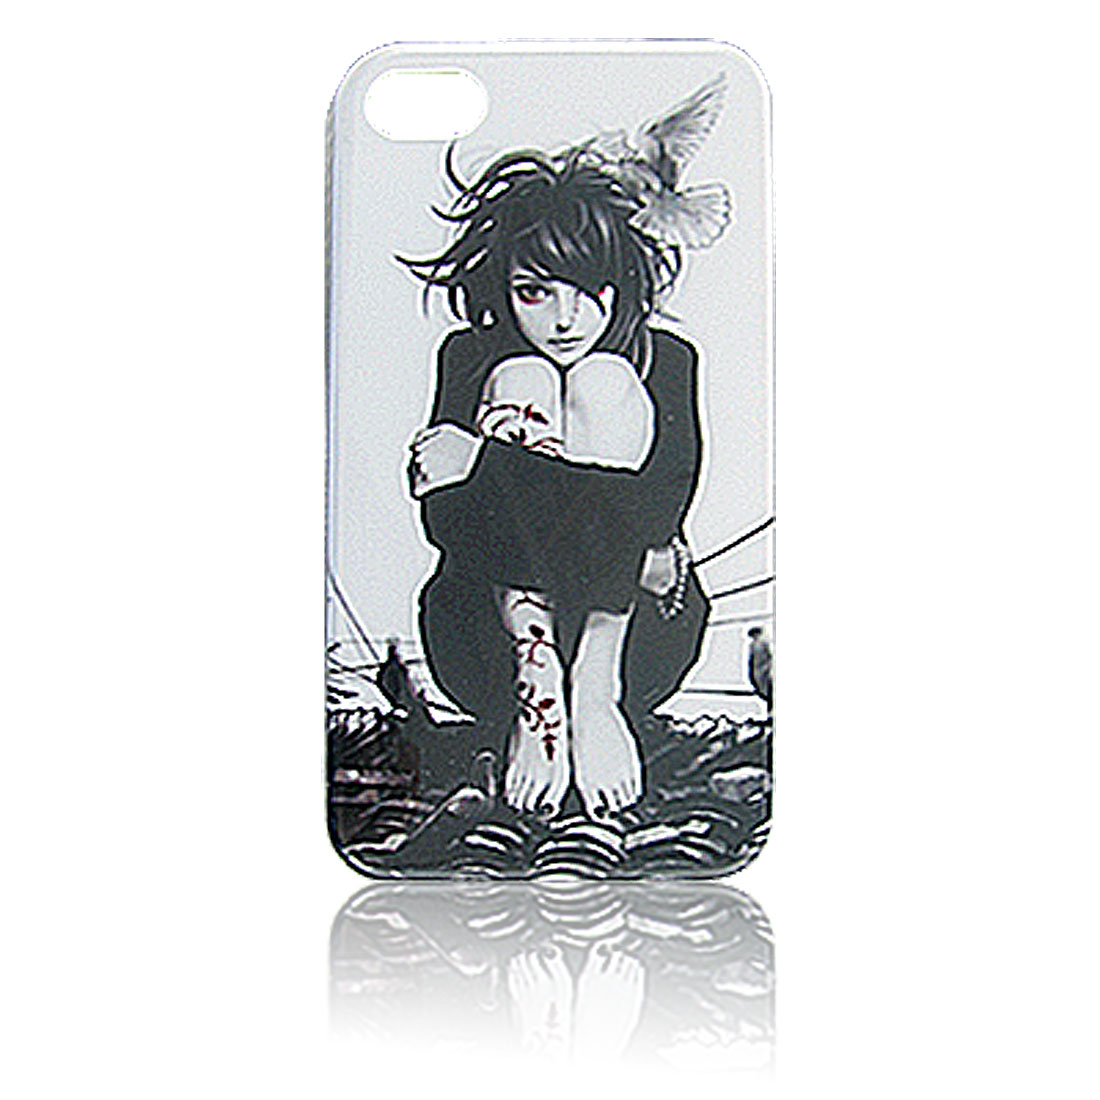 White Black Hard Plastic IMD Lady Print Back Case for iPhone 4 4S